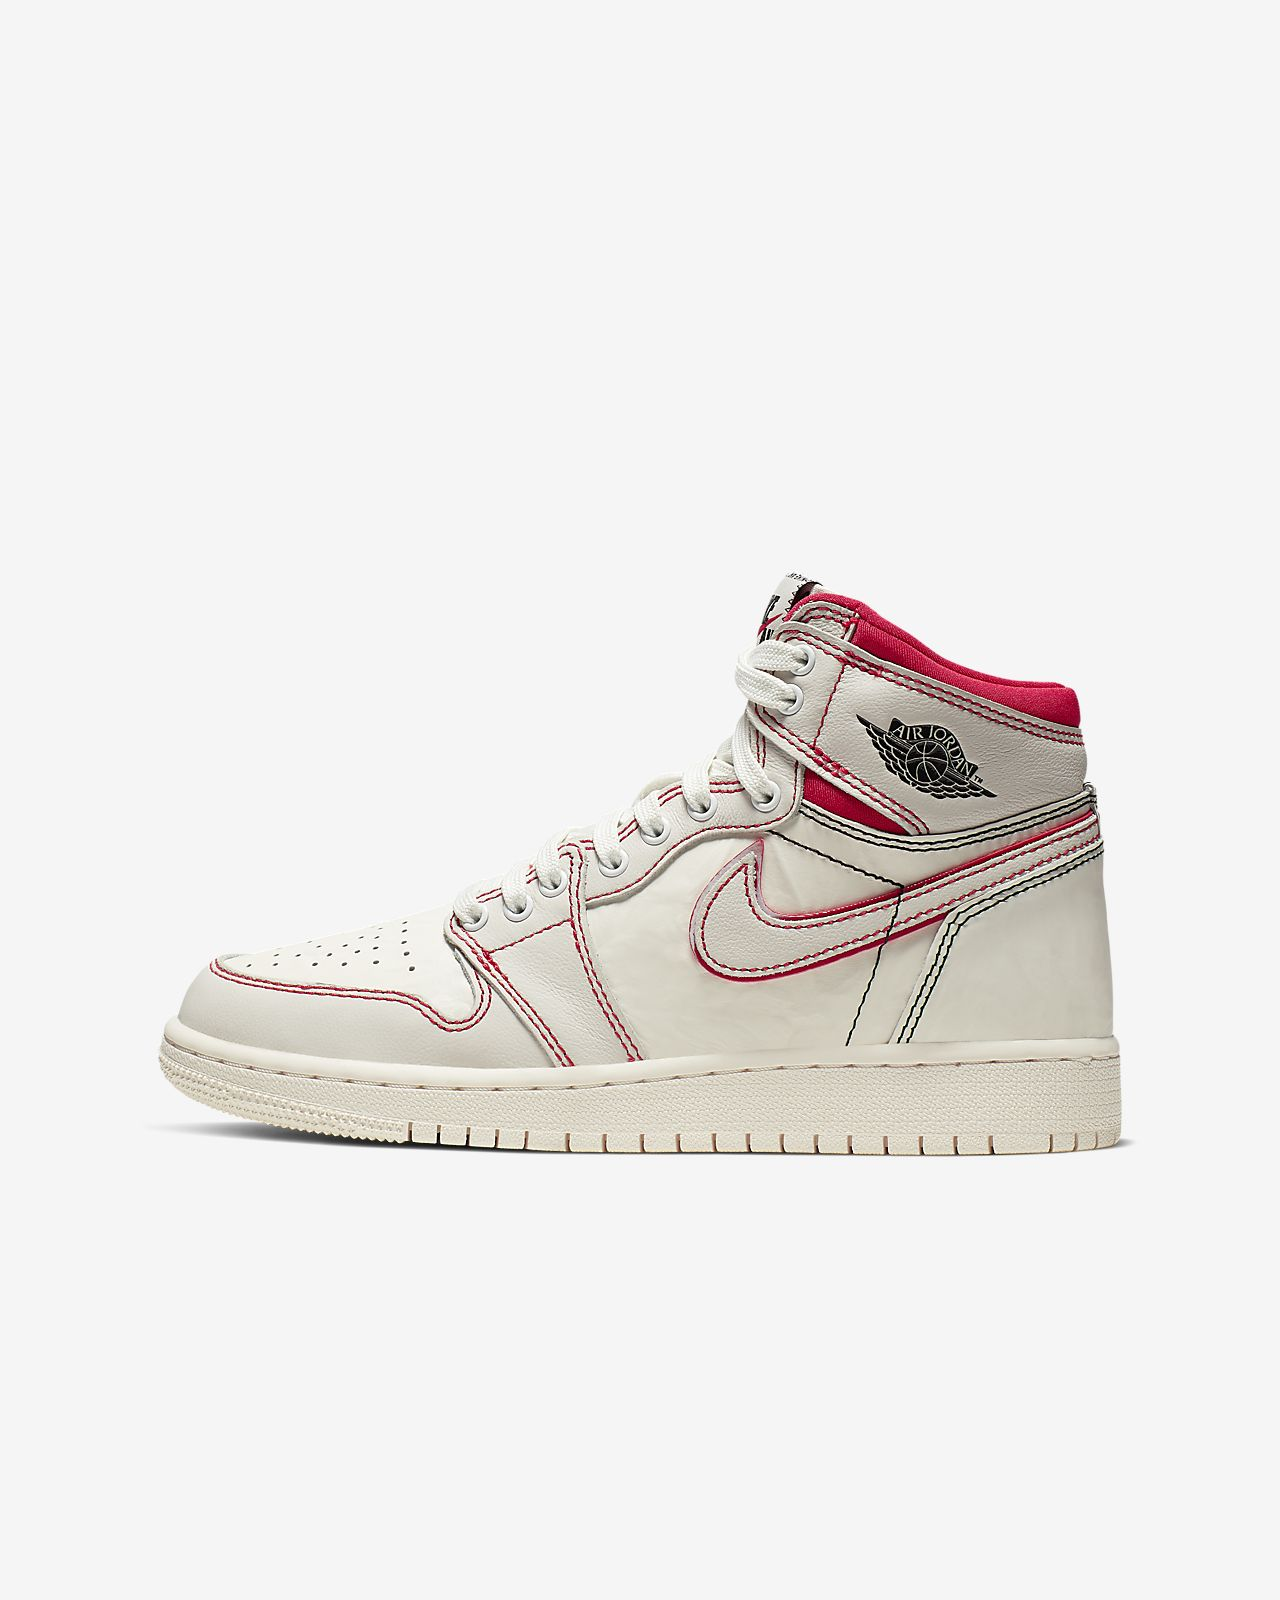 uk availability 91ed0 c2641 ... Air Jordan 1 Retro High OG Boys  Shoe